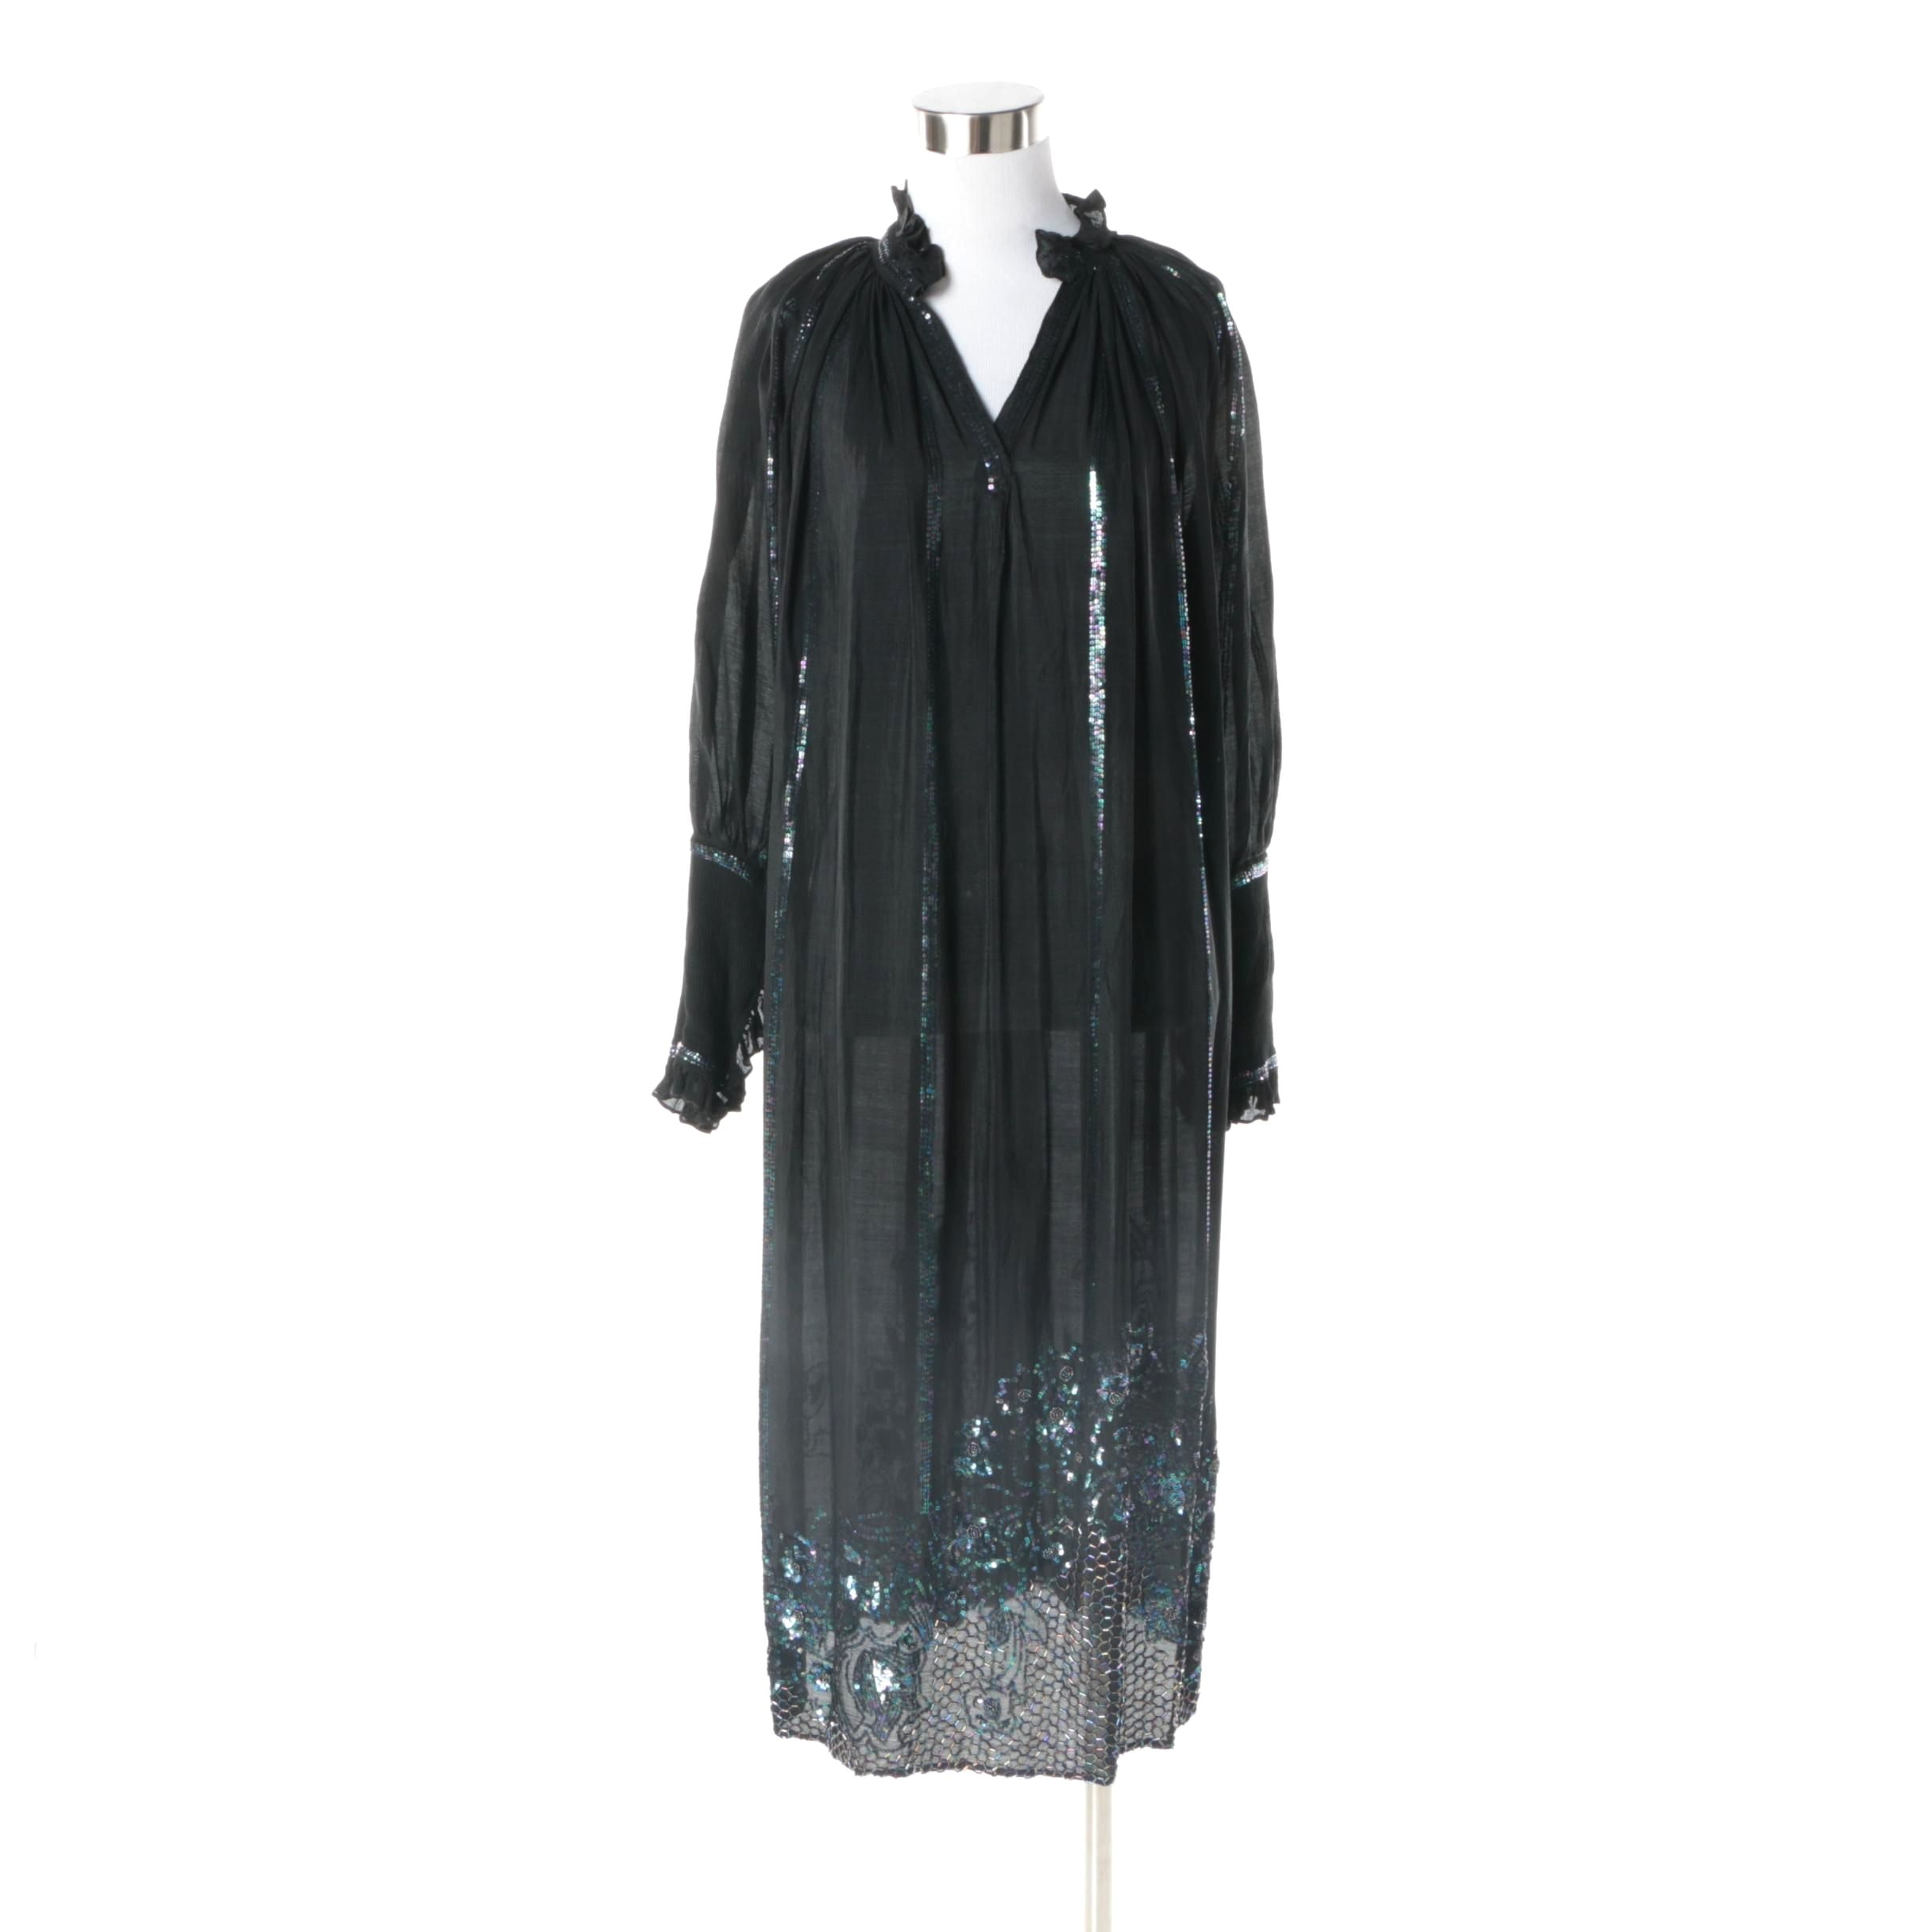 1980s Vintage Beaded Sheer Black Silk and Iridescent Floral Sequin Evening Dress